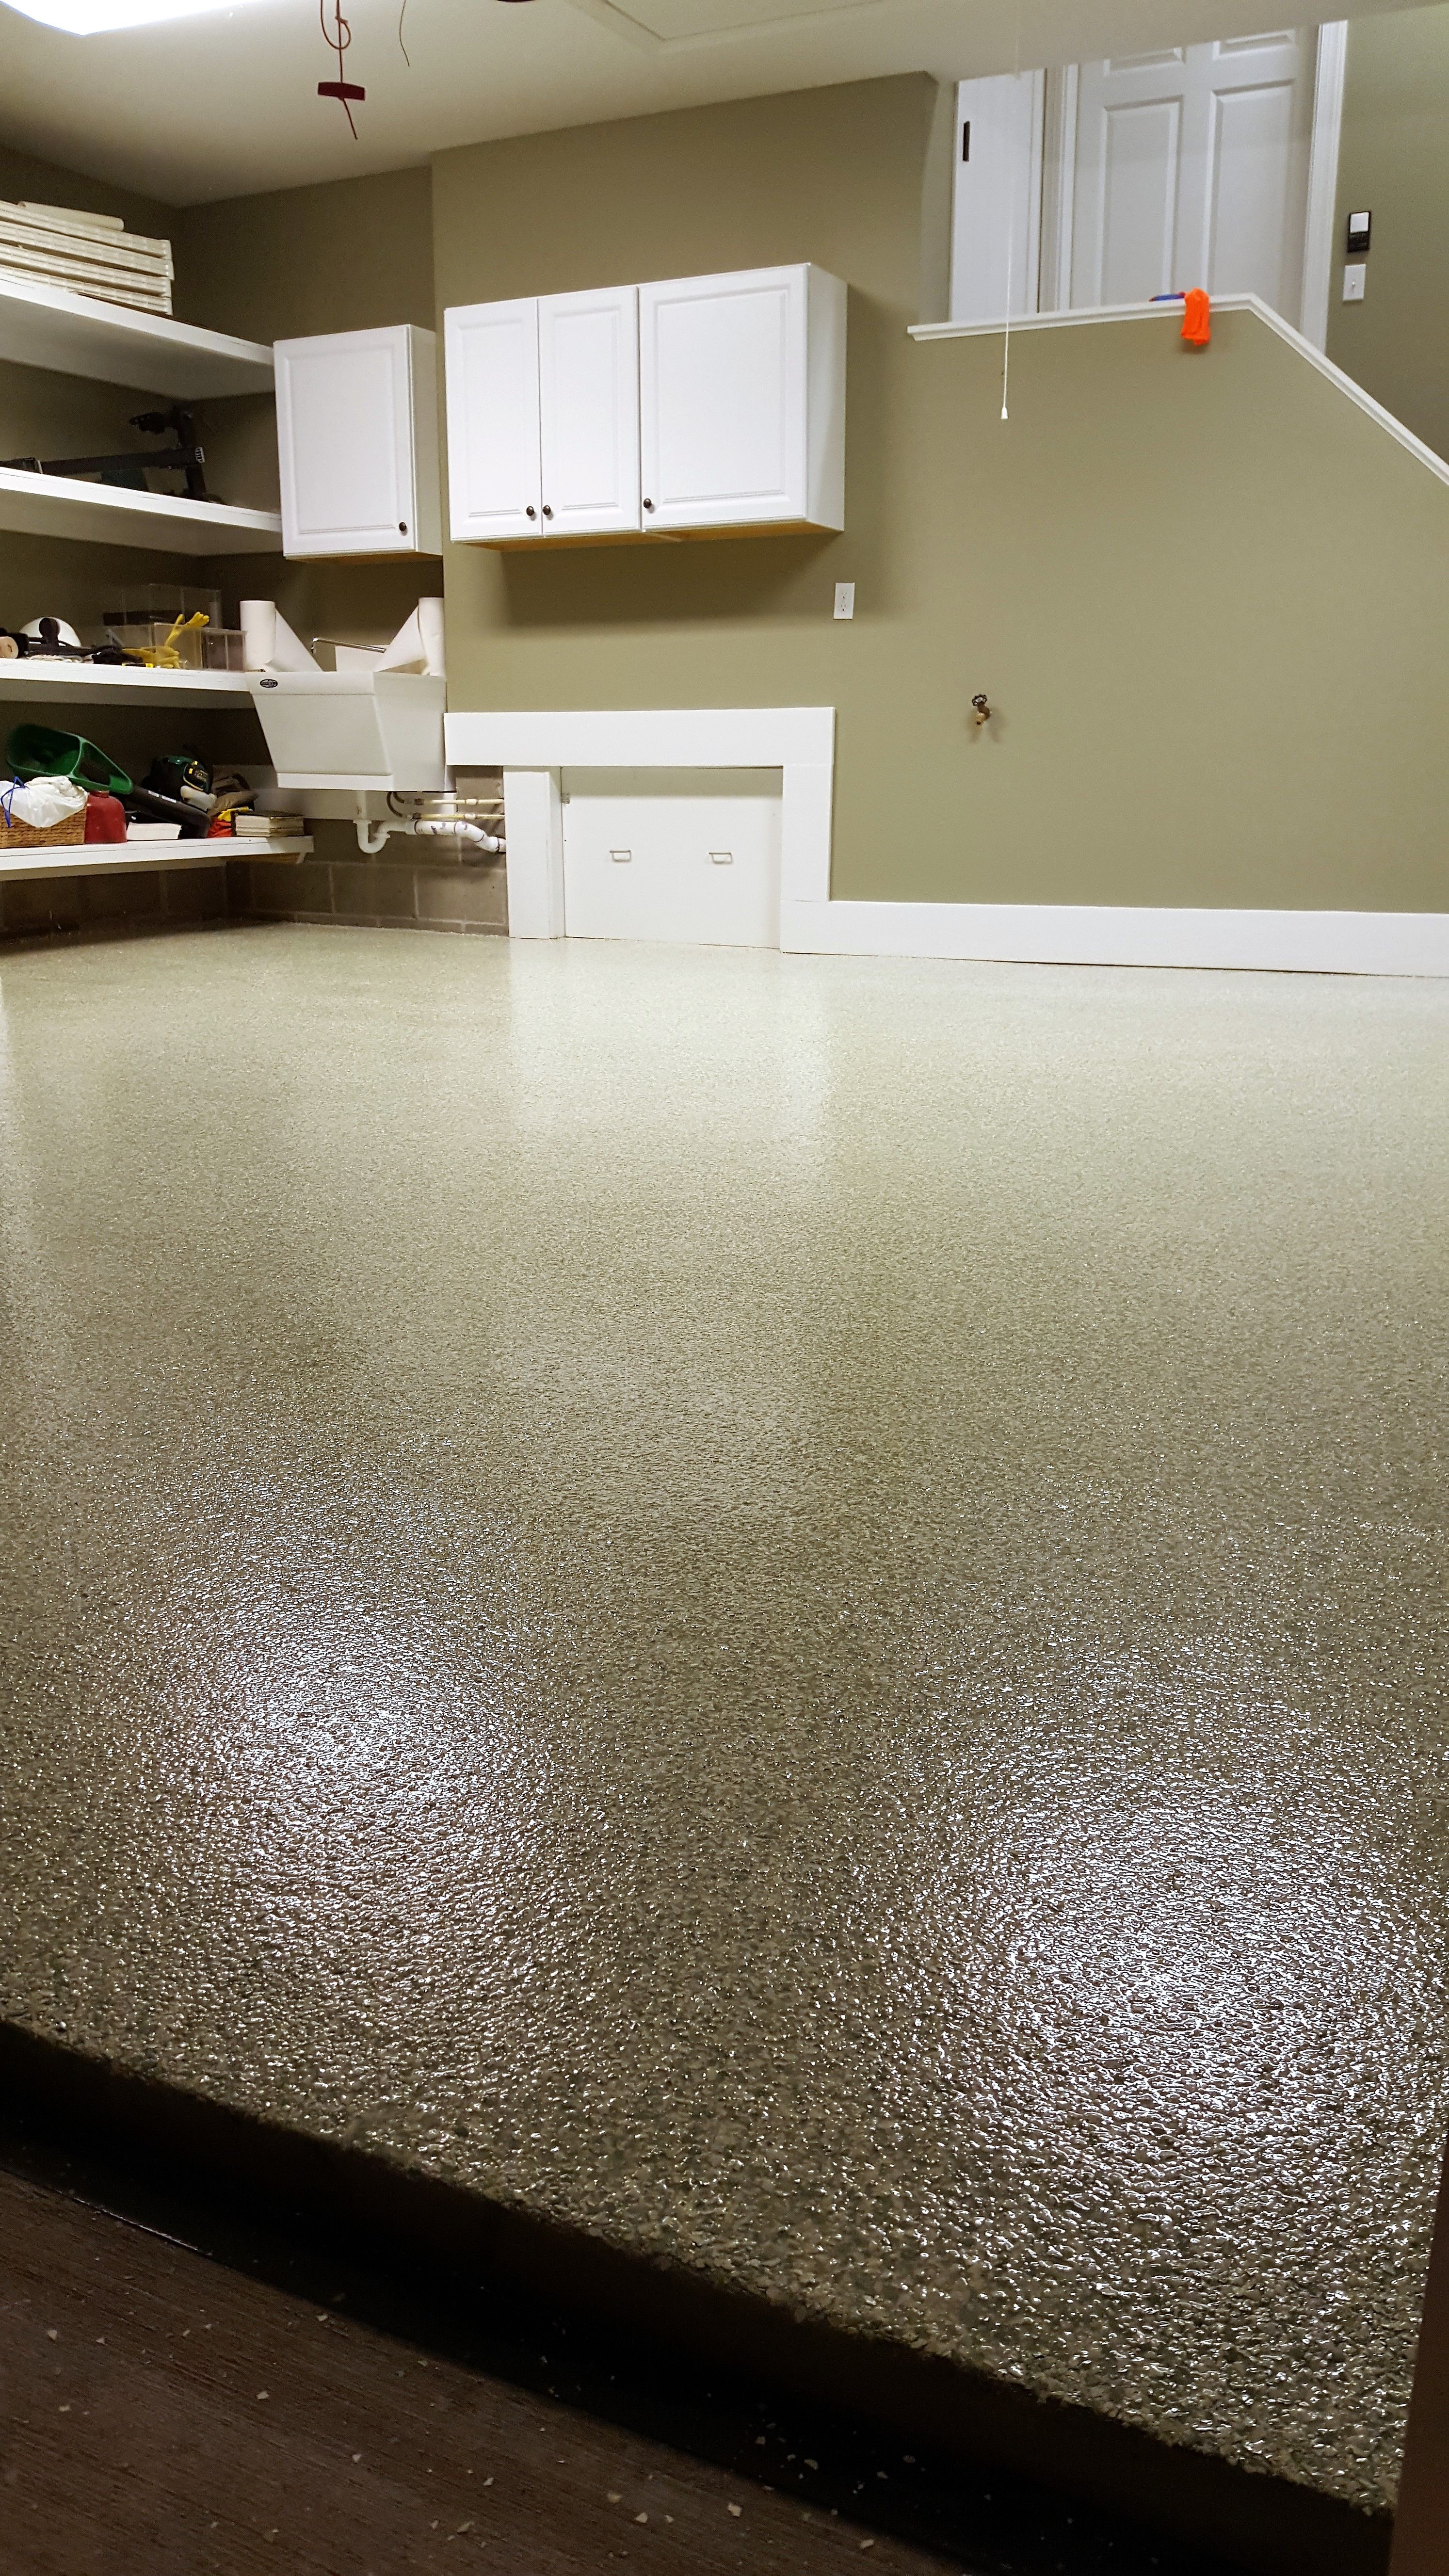 Garage Epoxy Cure Time The Texture Of The Fully Cured Coating Is Evident In This Picture